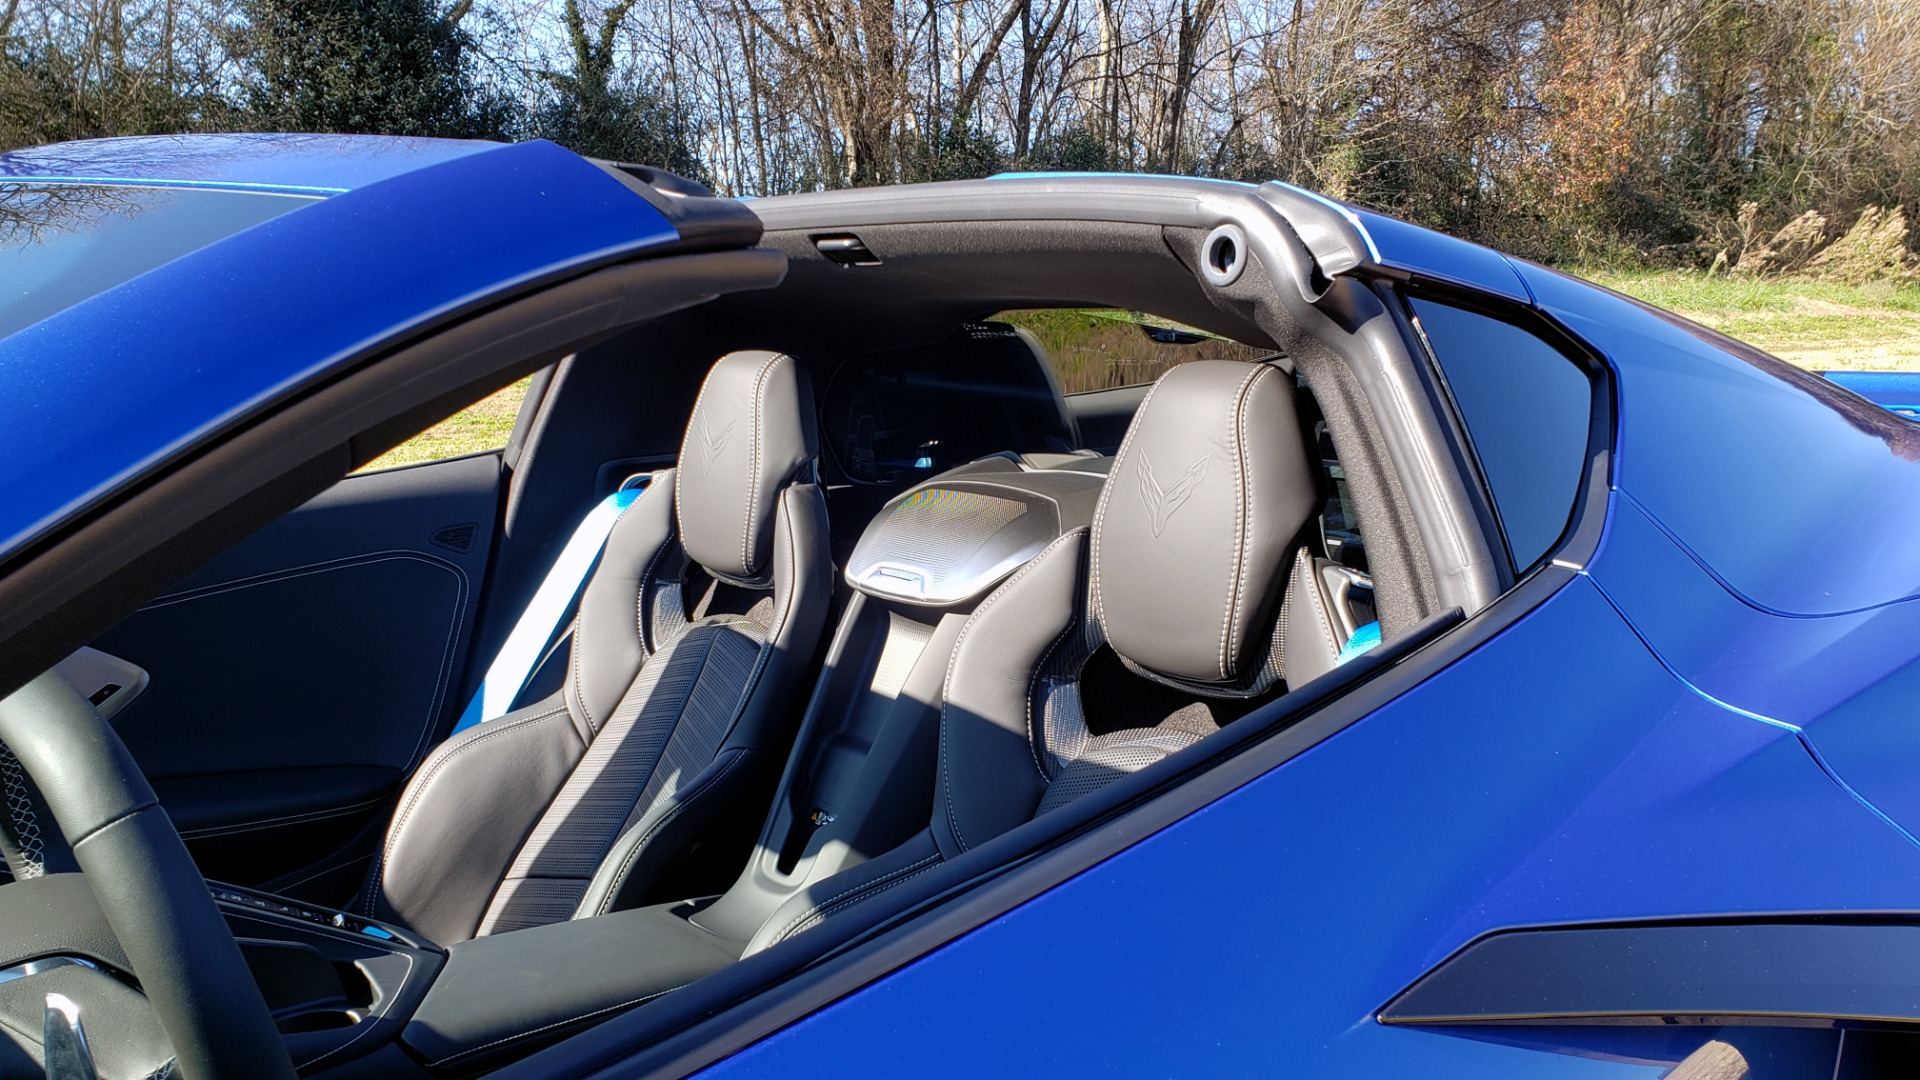 Used 2020 Chevrolet C8 CORVETTE STINGRAY 2LT COUPE / NAV / HUD / BOSE / GT2 SEATS / FRONT LIFT / REARVIEW for sale Sold at Formula Imports in Charlotte NC 28227 18